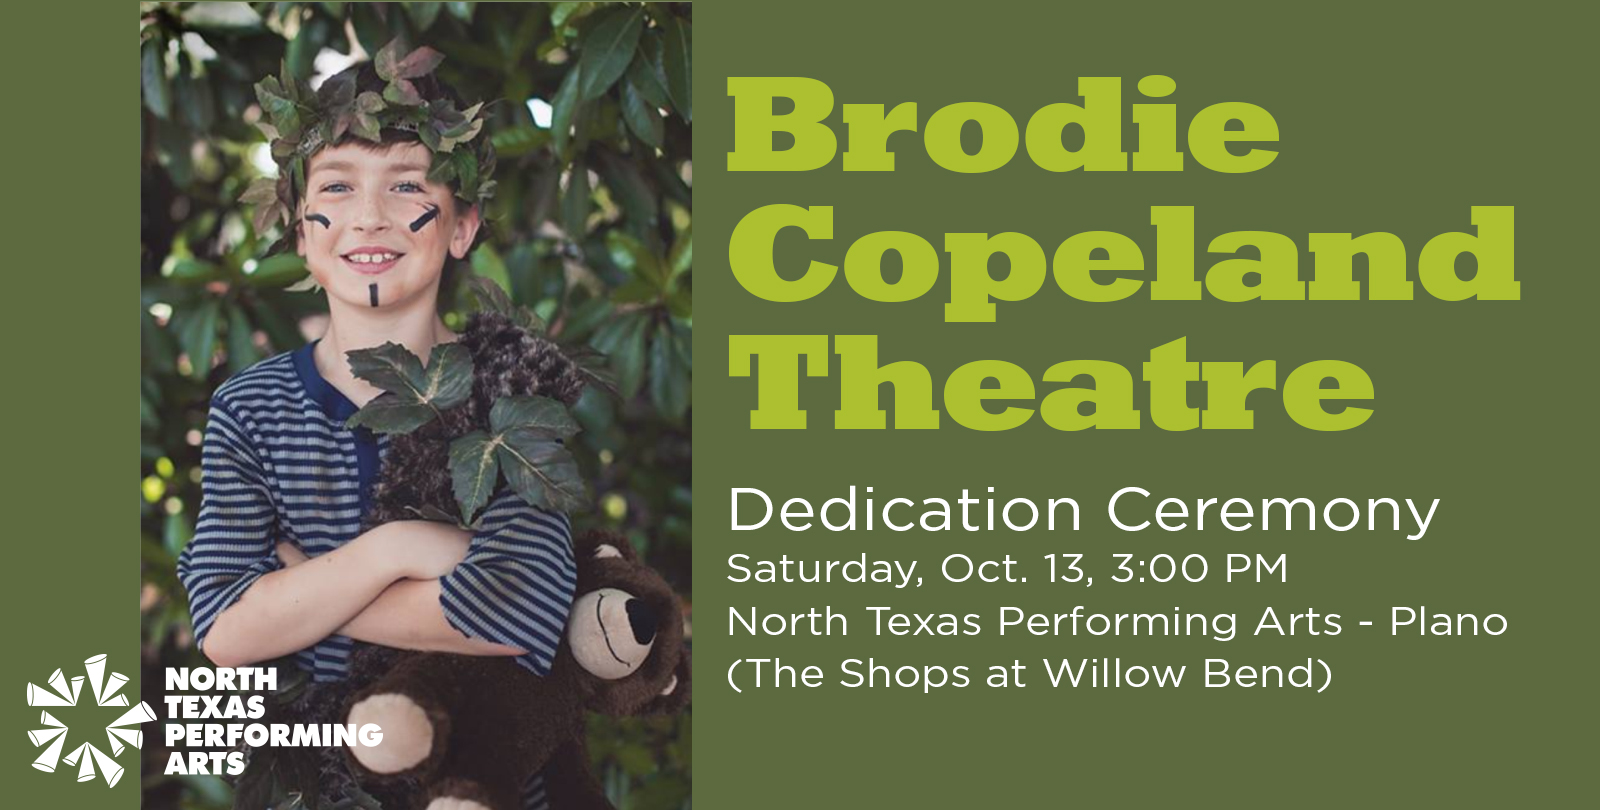 The announcing of the Brodie Copeland Theatre dedication ceremony on Saturday, October 13, 2018 at North Texas Performing Arts - Plano graphic